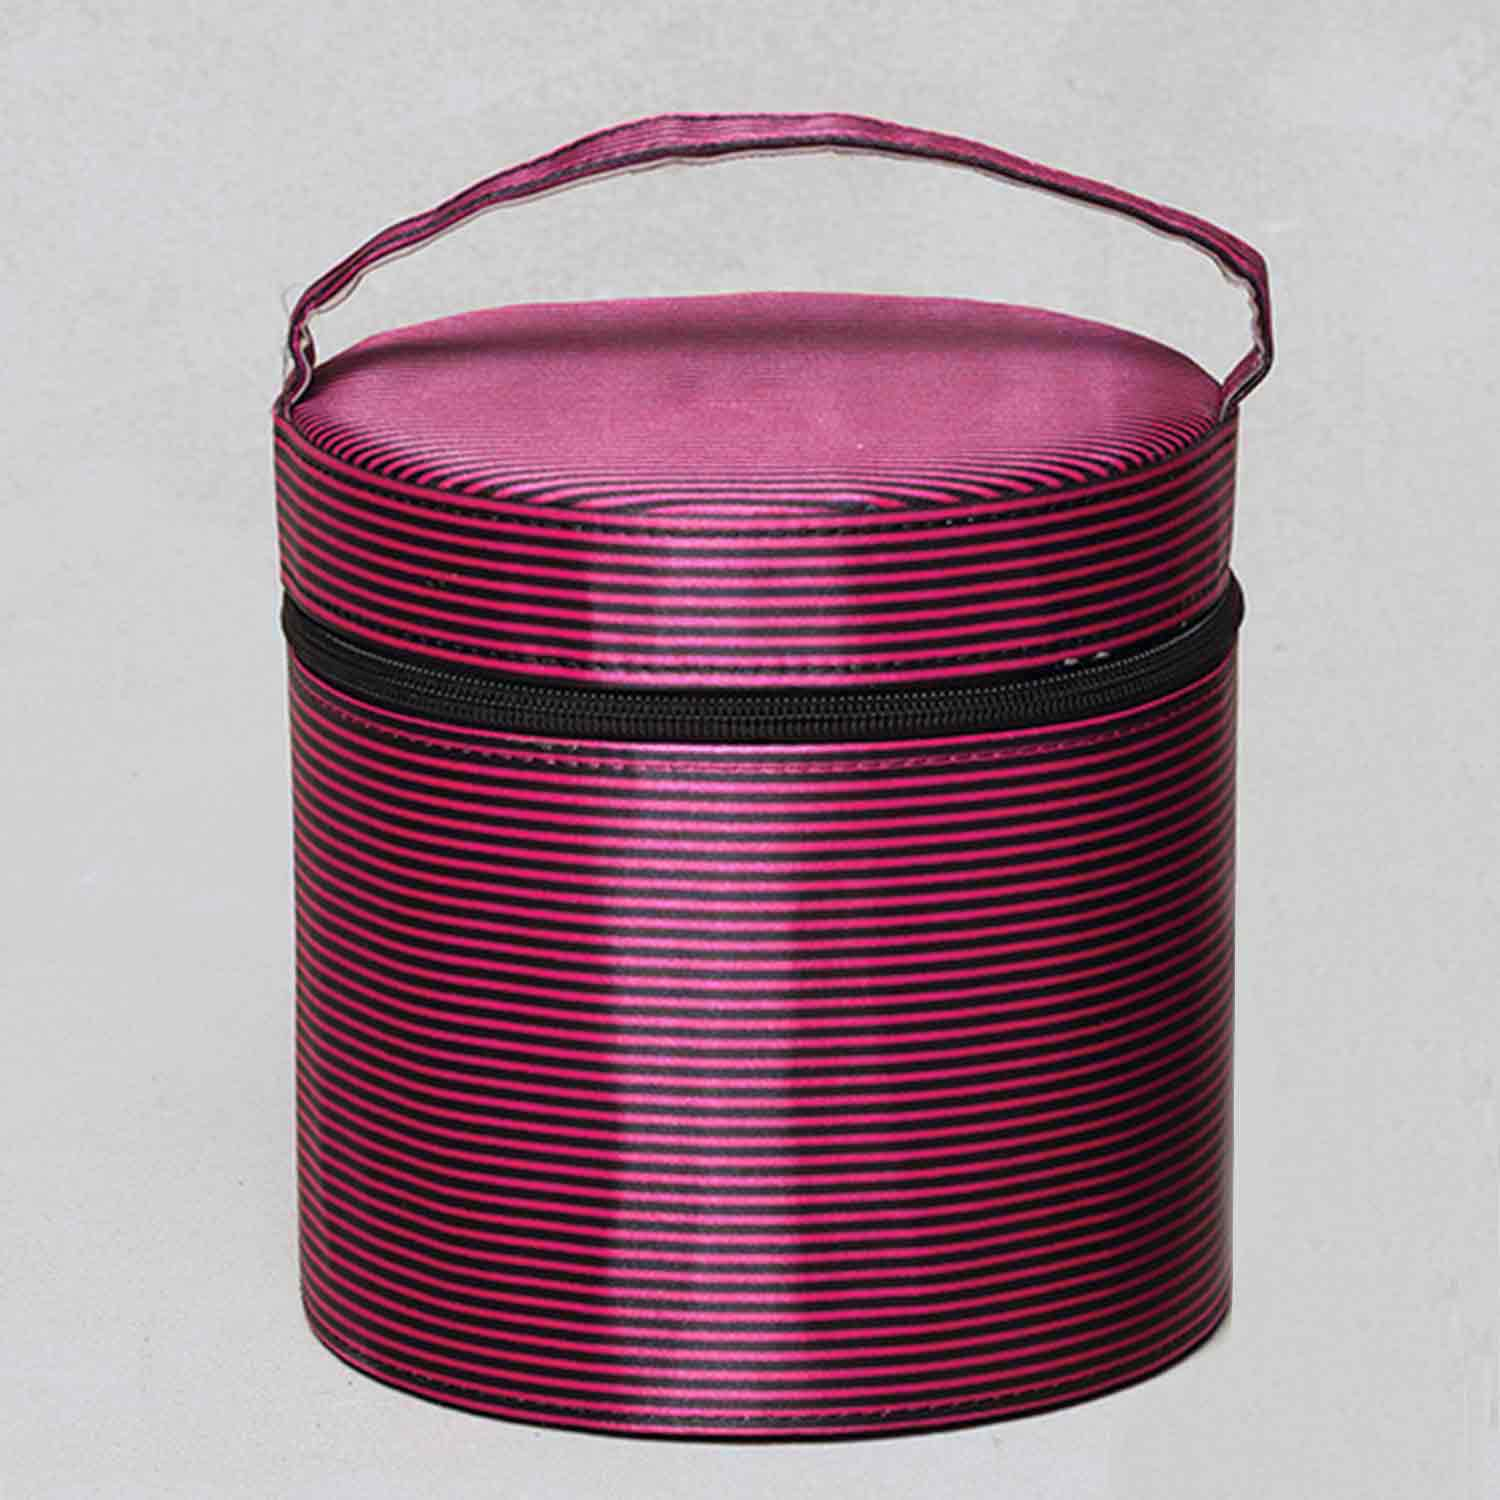 "STRIPE ROUND RETRO CASE PINK/BLACK 6.5""X6.5""X6.5"" X7249 *30sp"